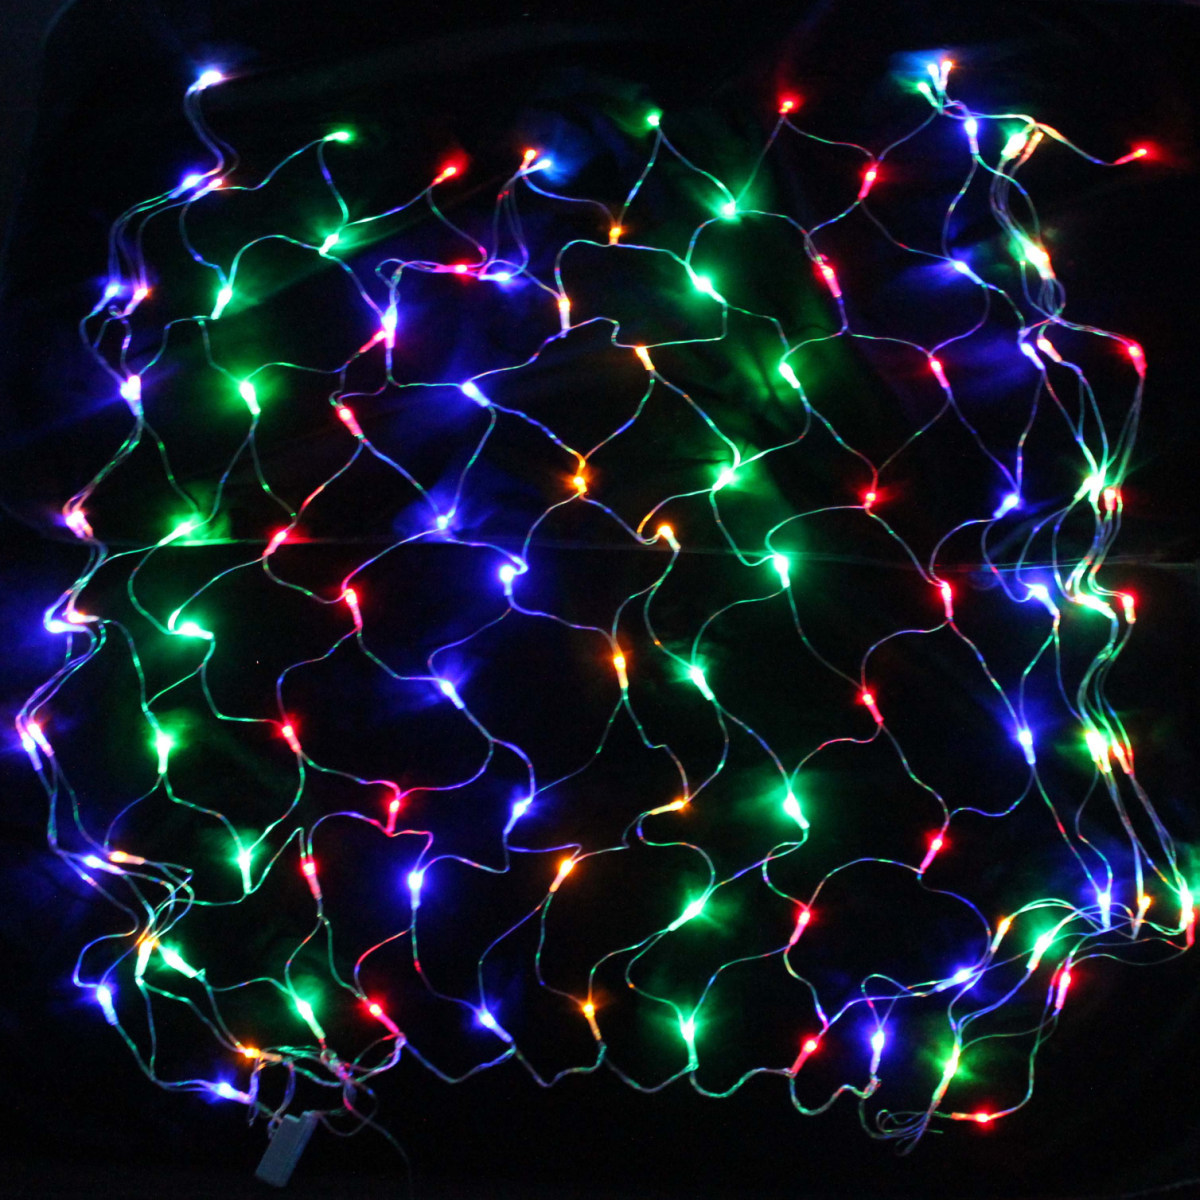 3h1 christmas decoration 120 led net lights decoration for 160 net christmas decoration lights clear